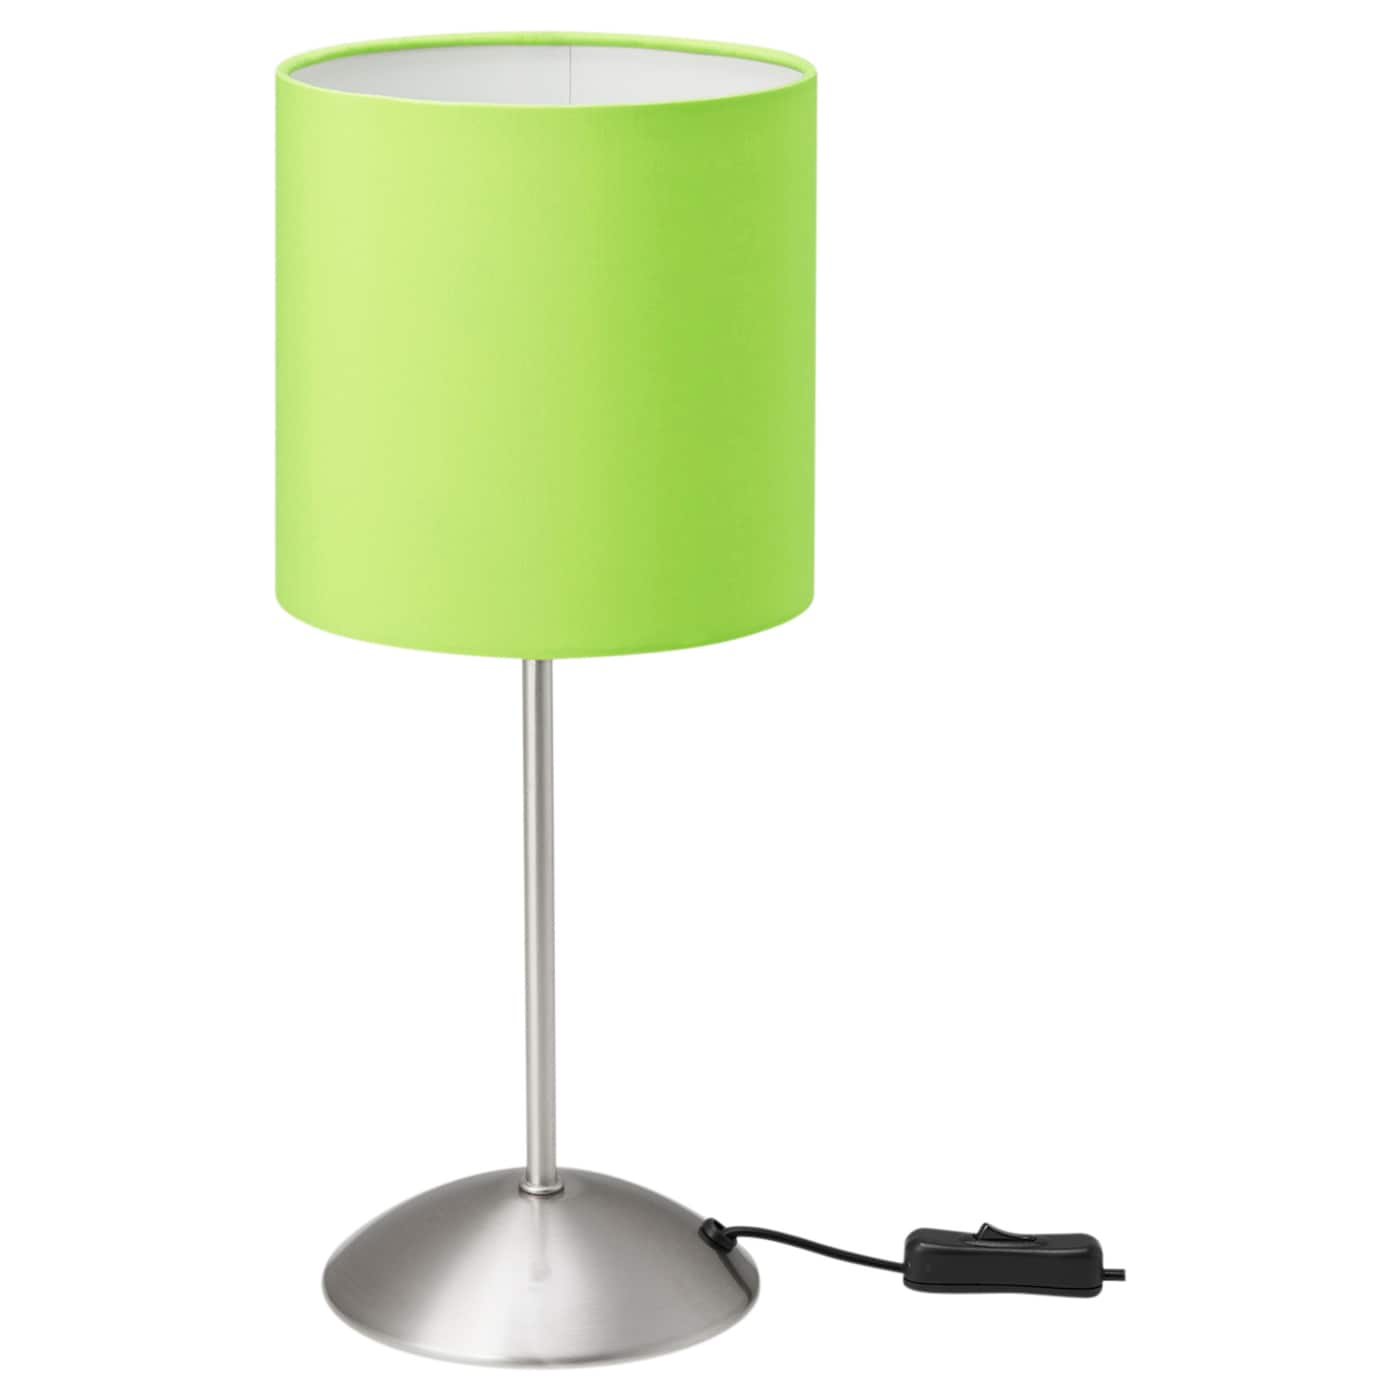 Light green table lamp - Ikea Tiarp Table Lamp The Textile Shade Provides A Diffused And Decorative Light